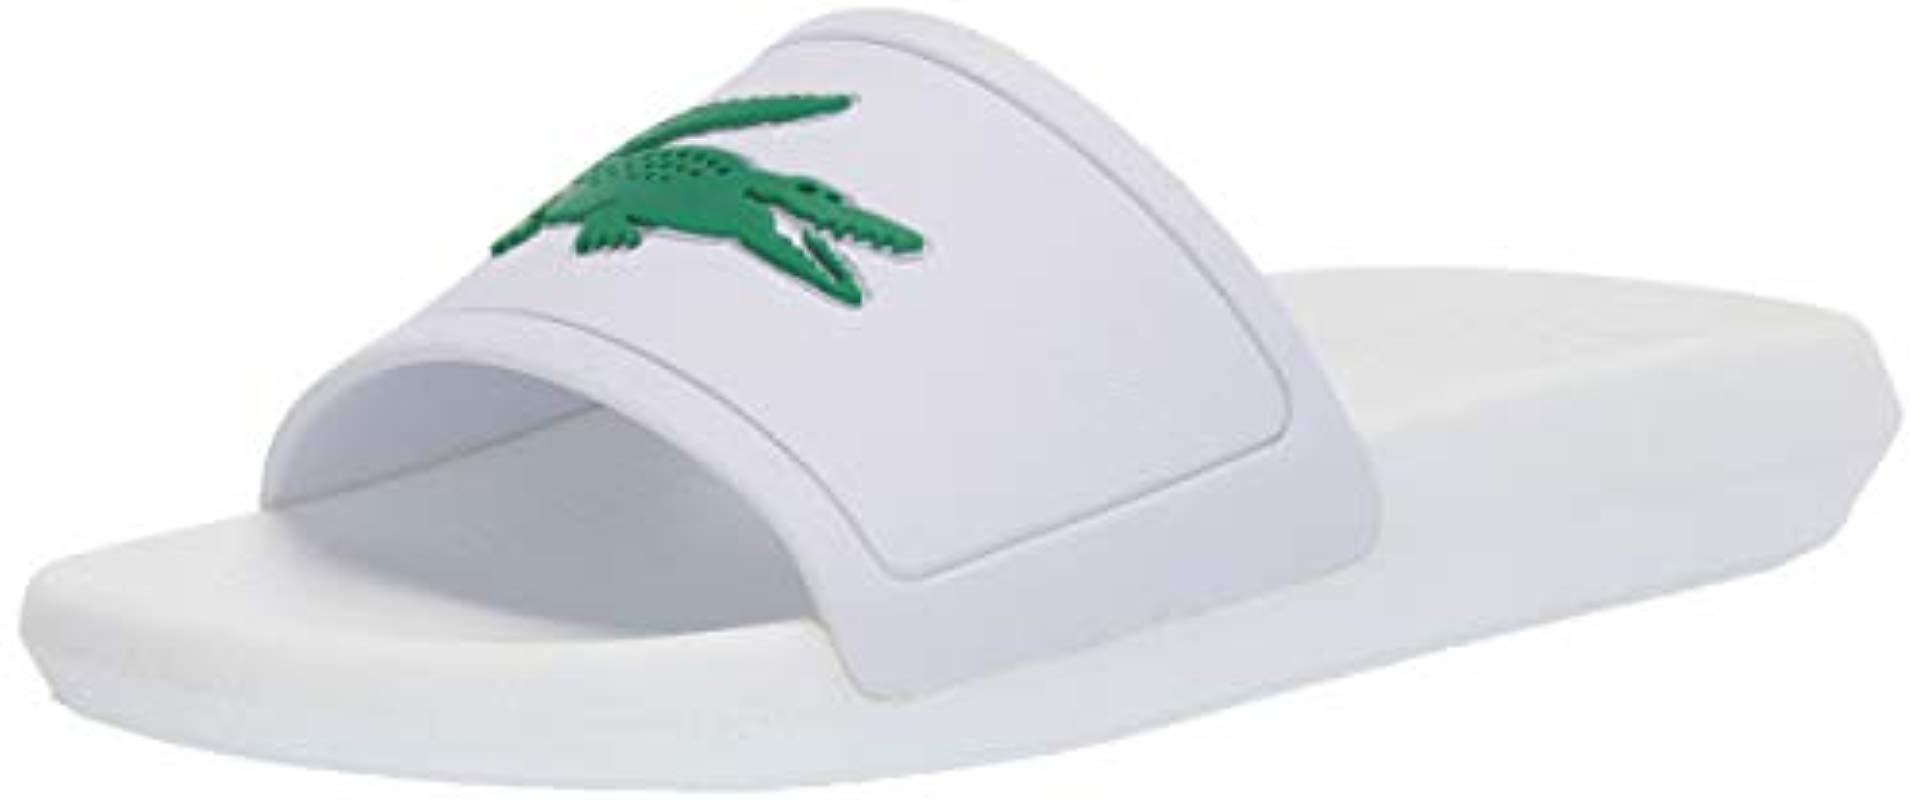 47c3e7d5943e Lyst - Lacoste 's Croco Slide 119 3 Cfa Open Toe Sandals in White ...